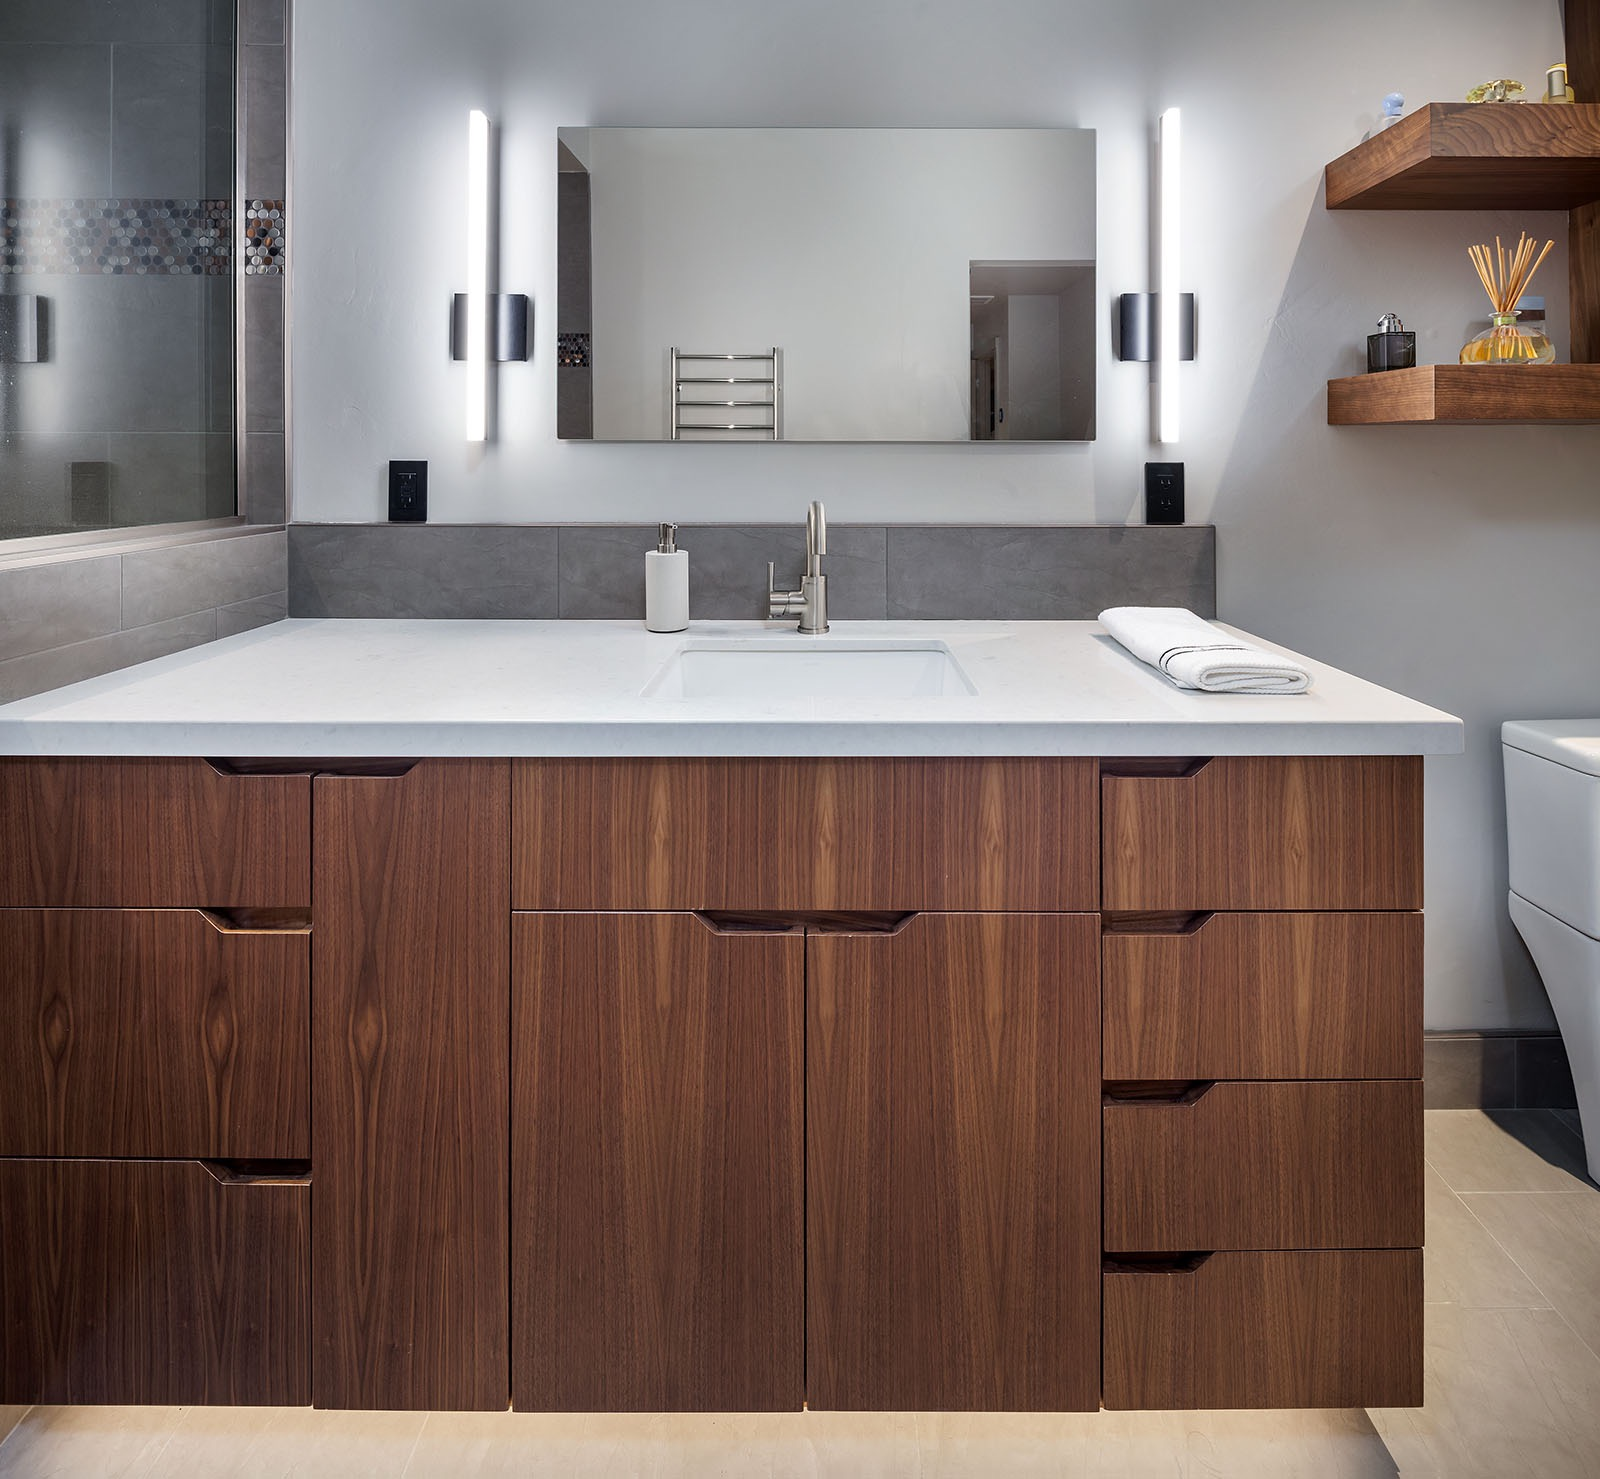 Warm Wood Vanity Furniture In Gray Modern Bathroom (Image 17 of 18)